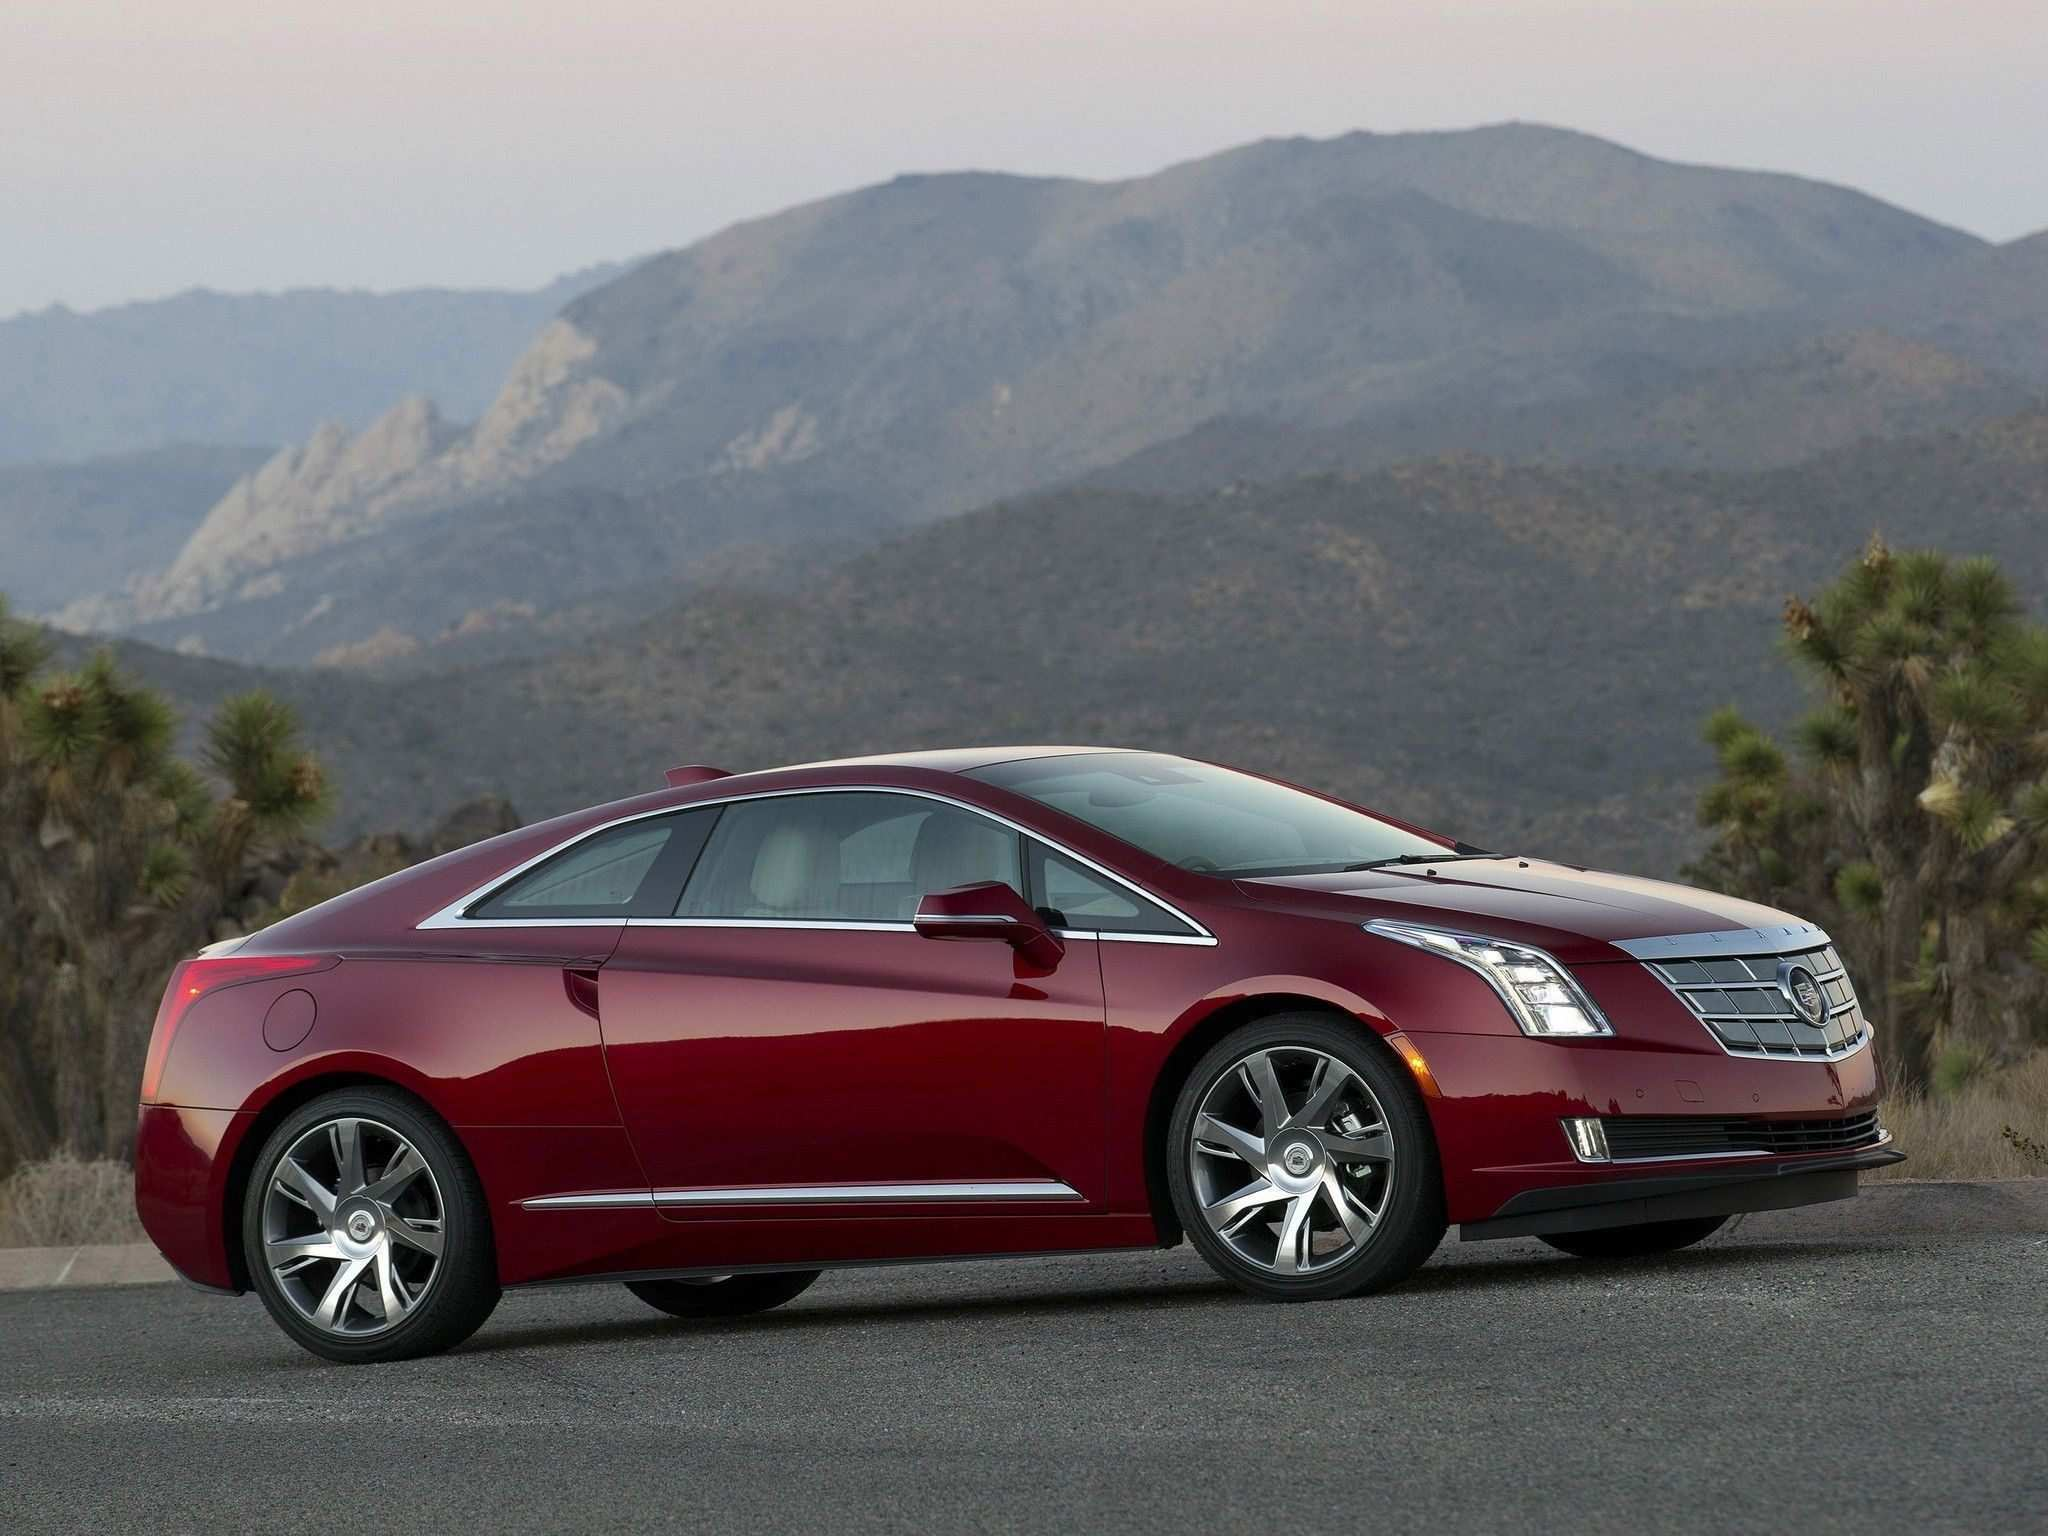 56 The 2020 Cadillac ELR S Images